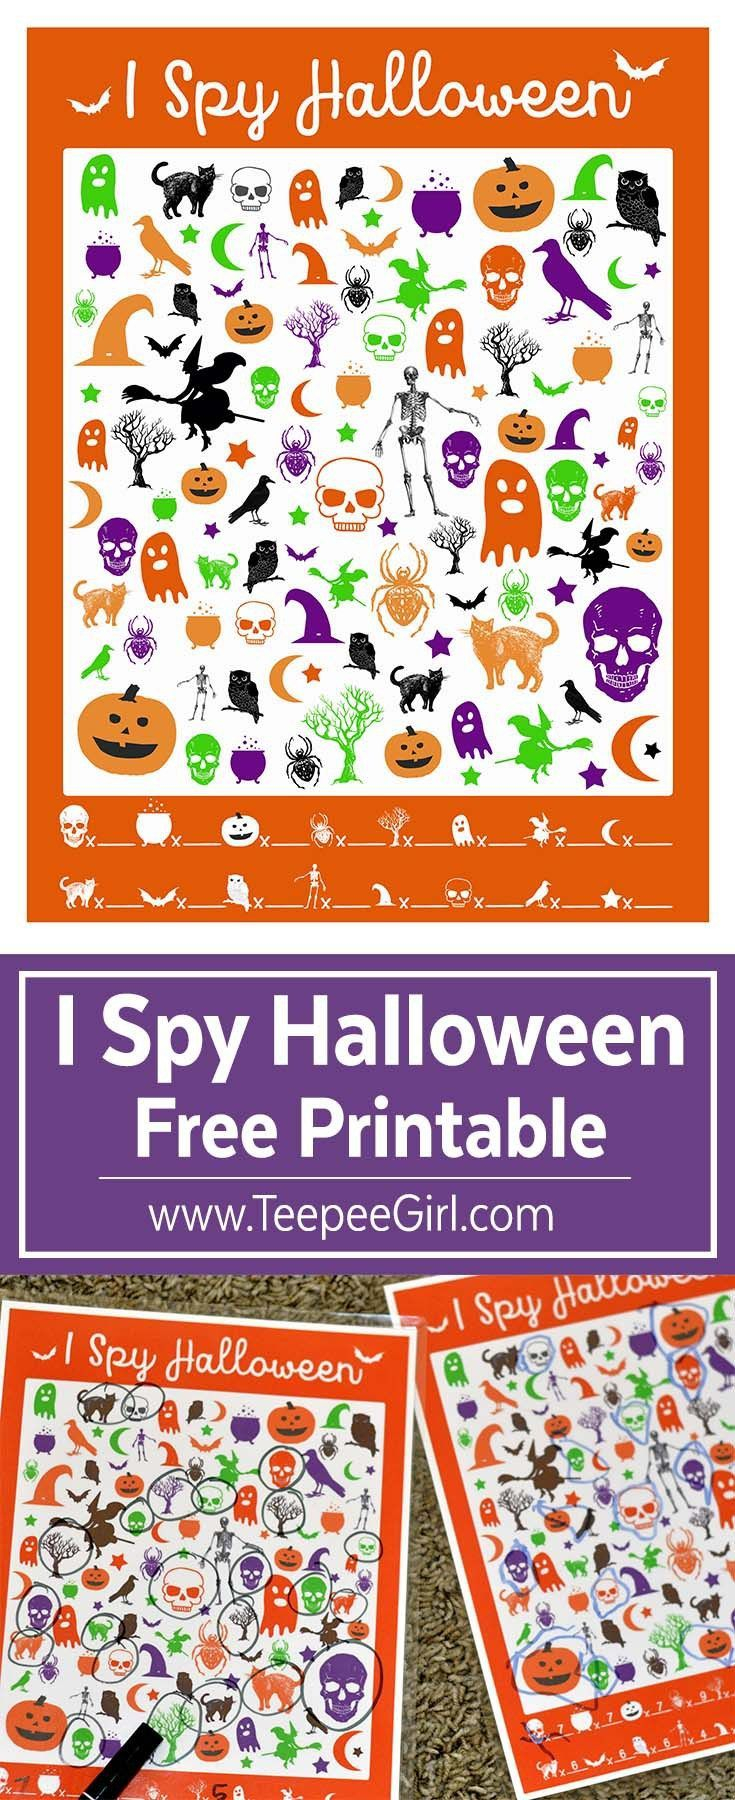 Free I Spy Halloween Printable Game | School Halloween Party